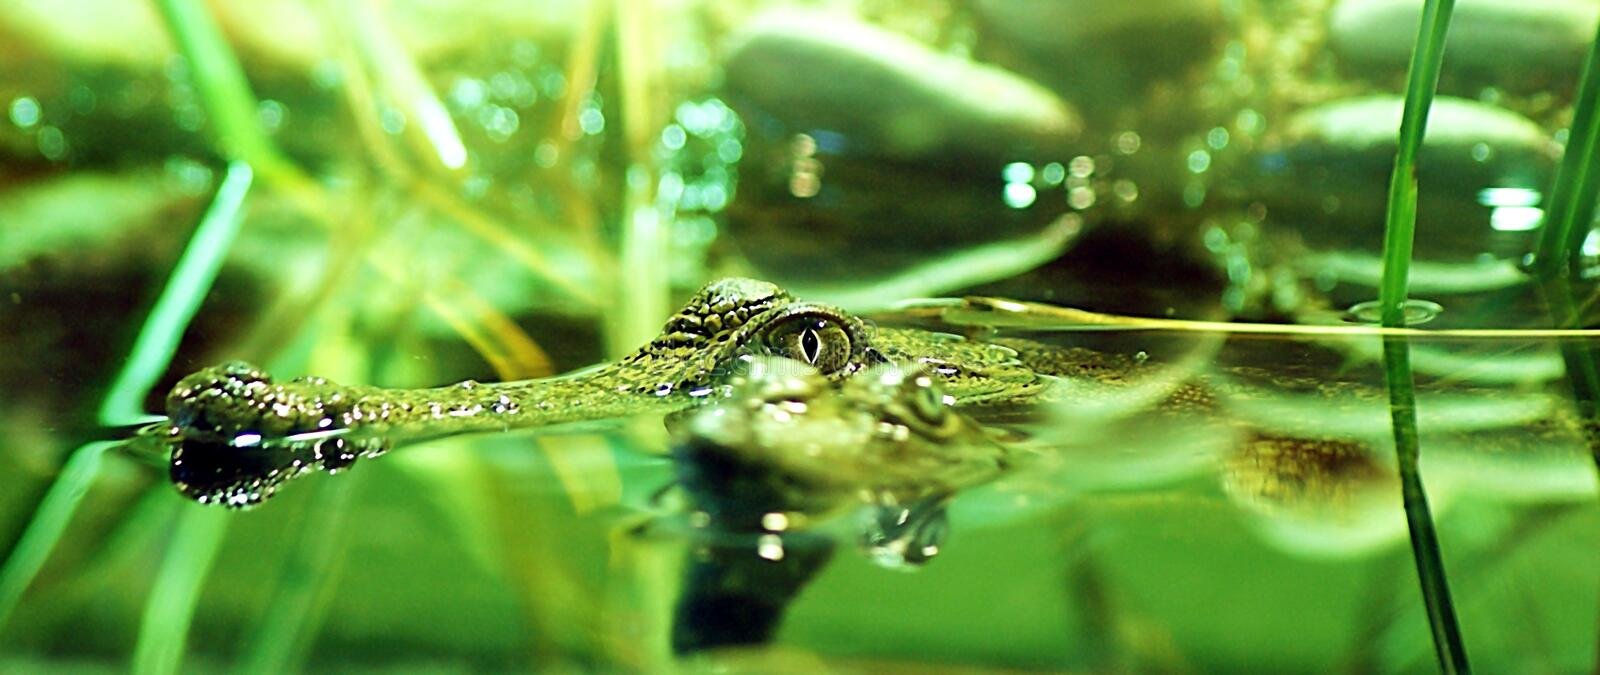 Aligator. Alligators move on land by two forms of locomotion referred to as `sprawl` and `high walk`. The sprawl is a forward movement with the belly making royalty free stock images